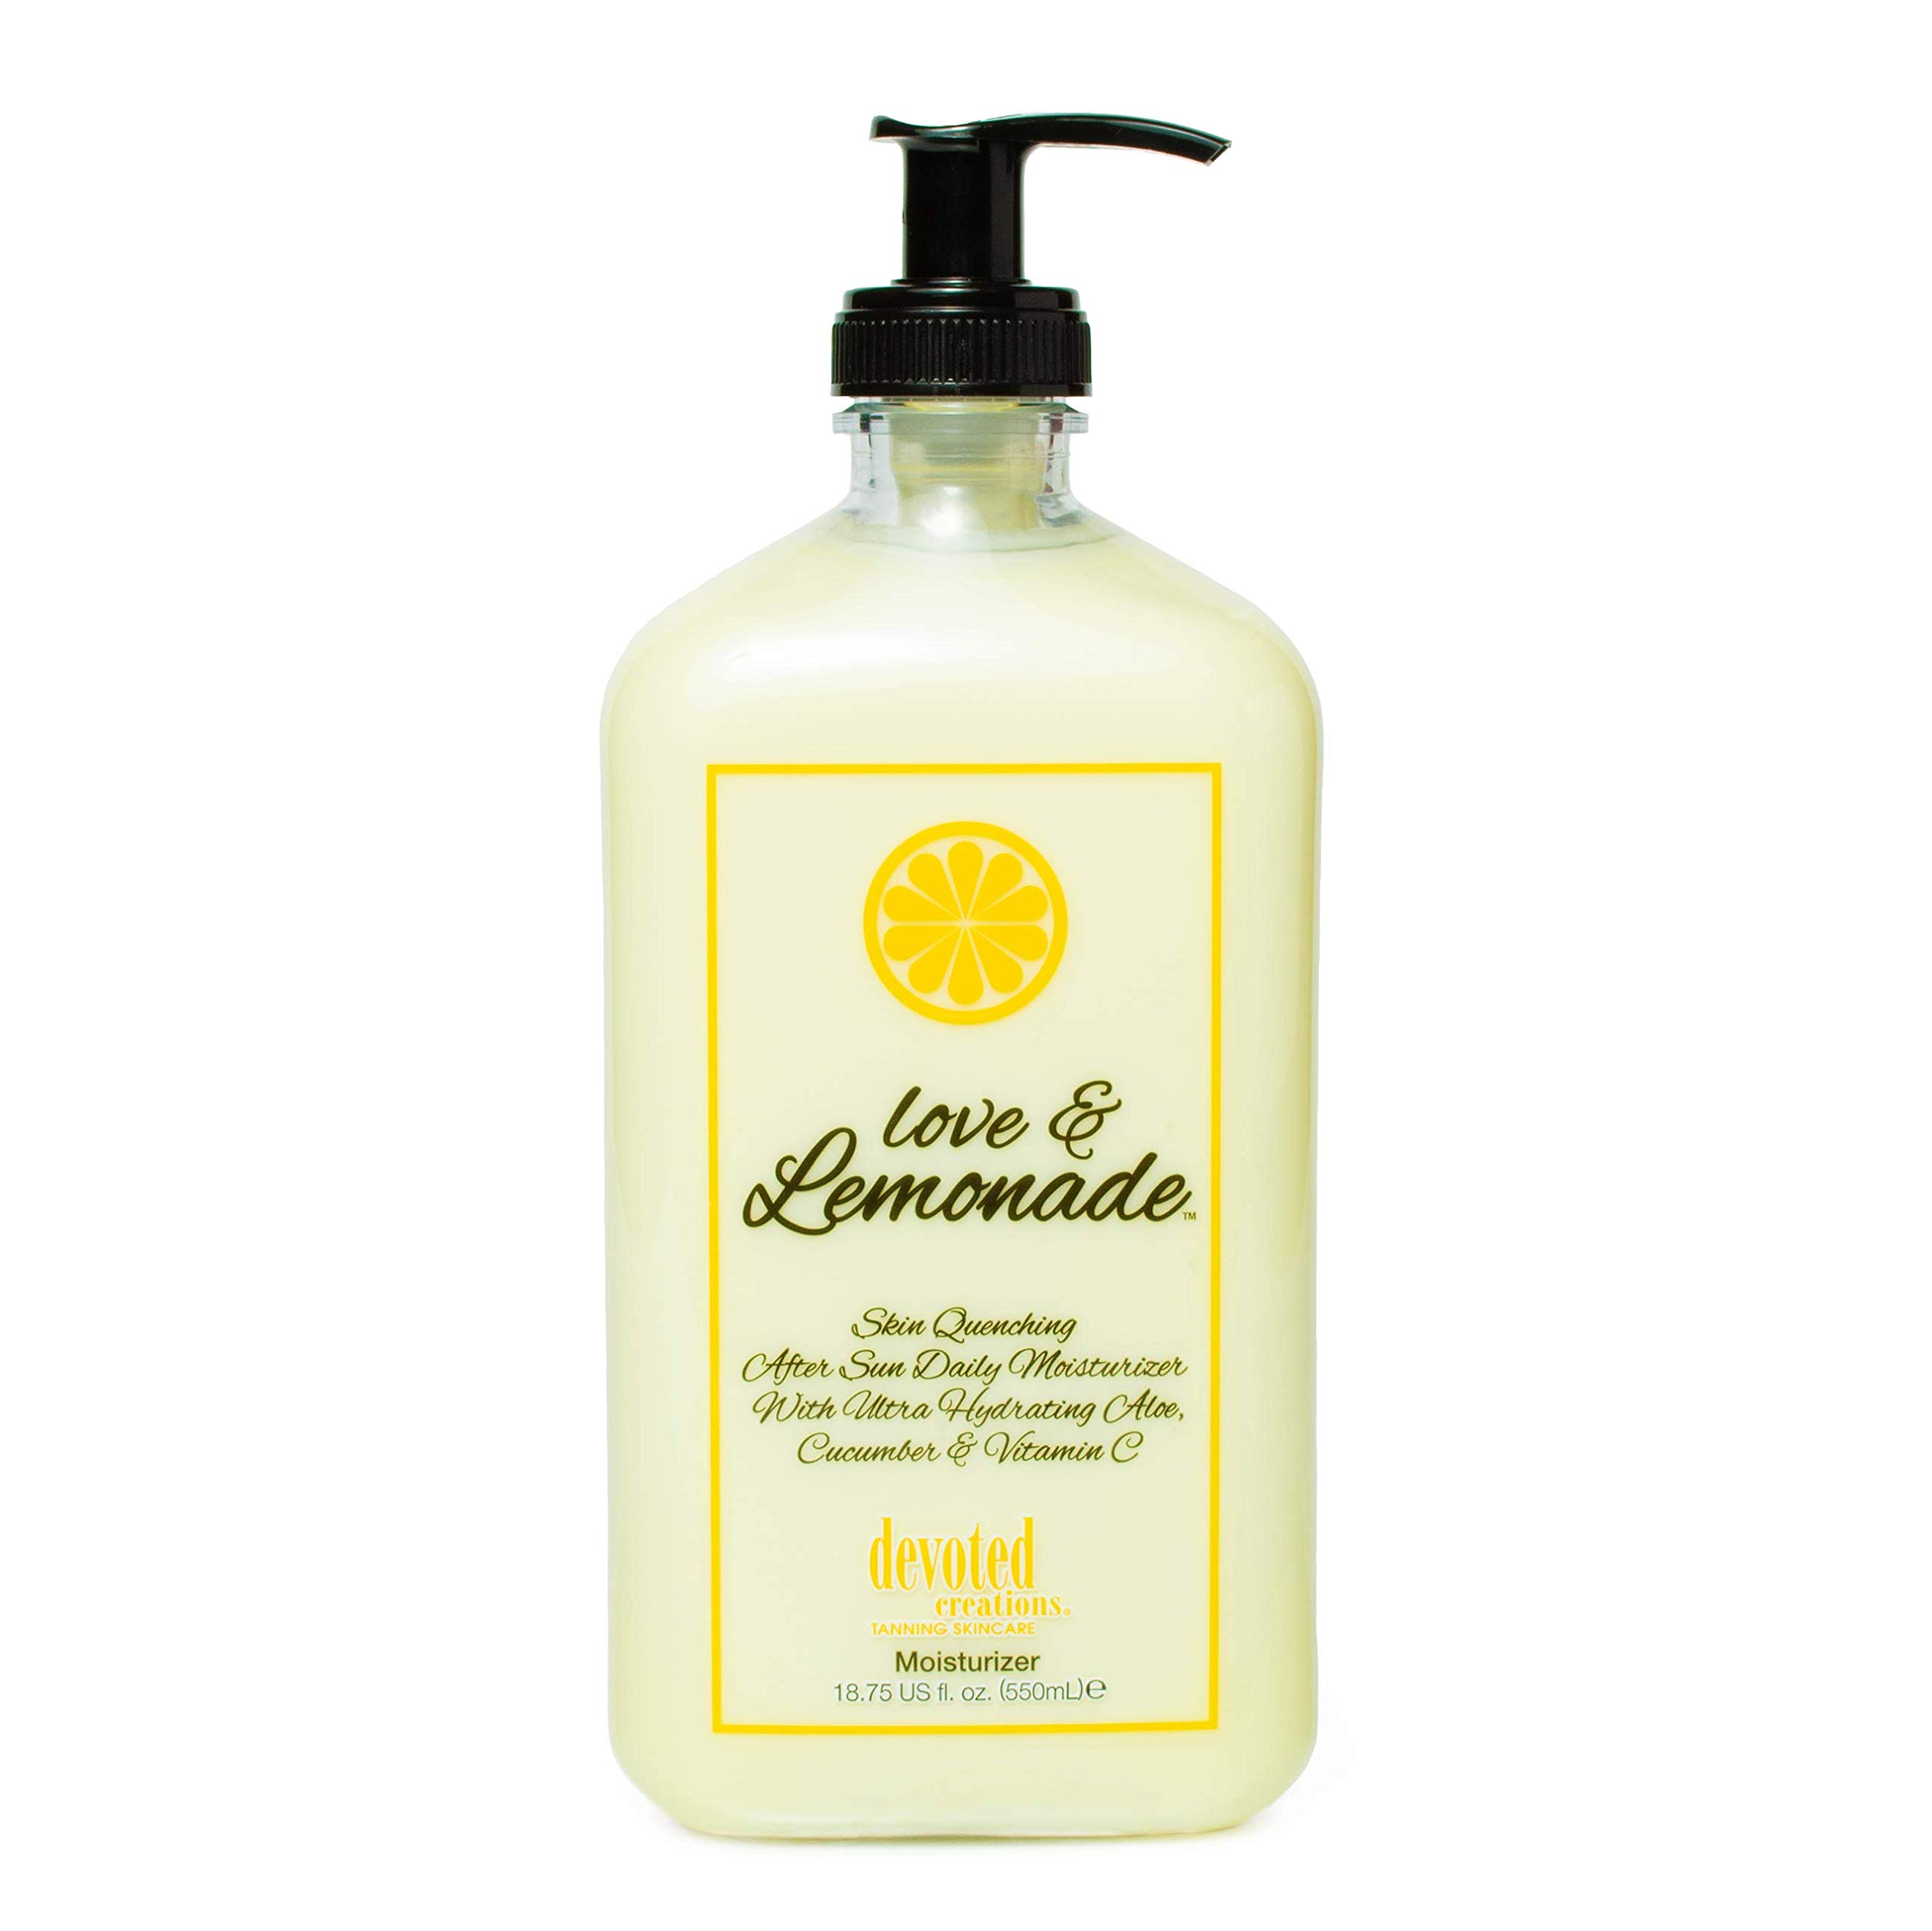 Love & Lemonade Moisturizer by Devoted Creation 18.75 oz. by Devoted Creations